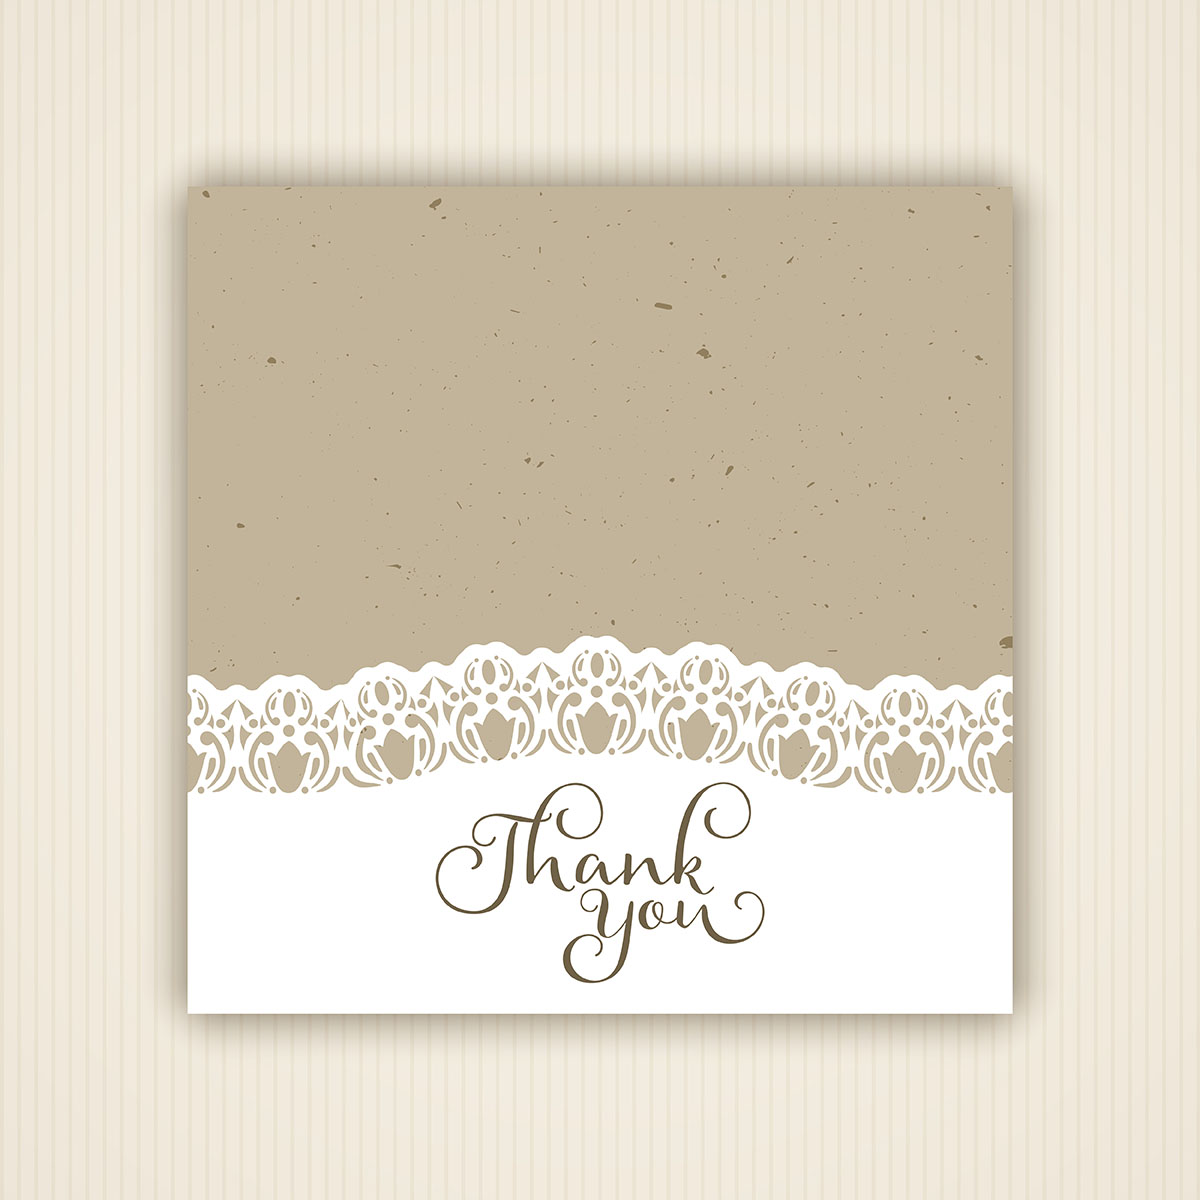 1200x1200 Thank You Card Free Vector Art